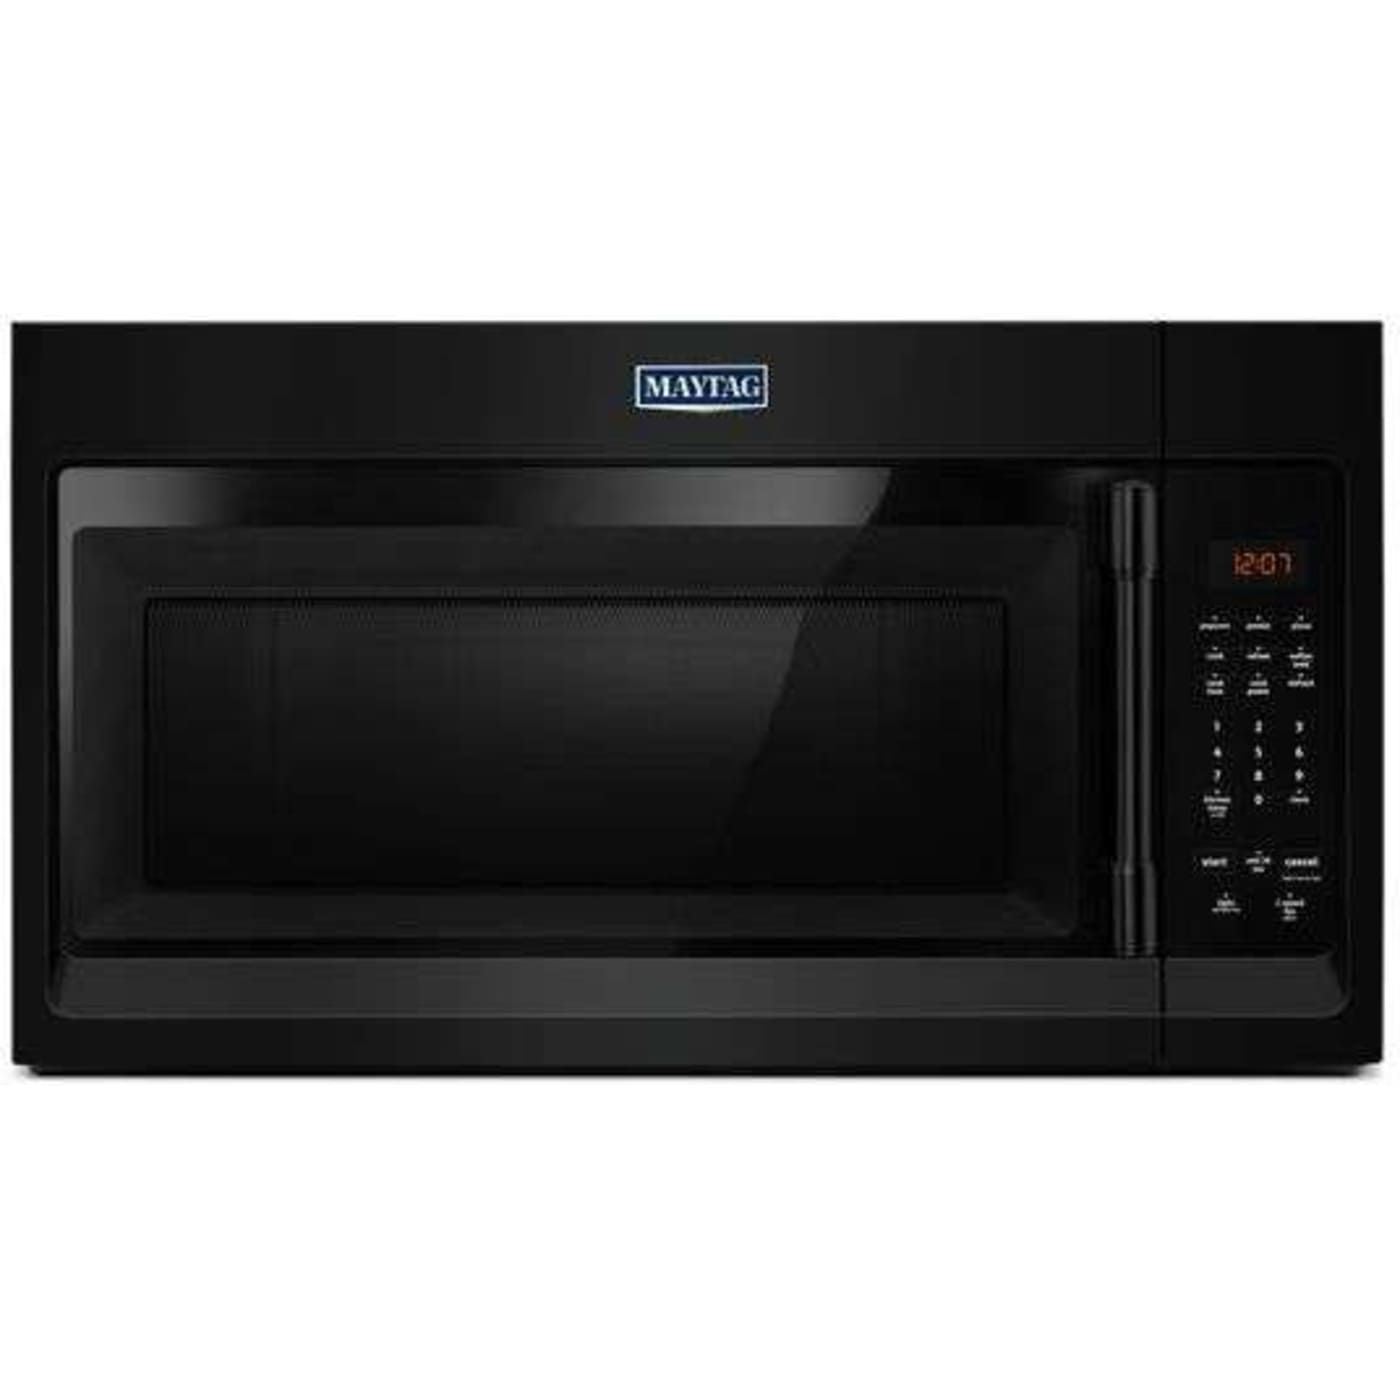 Mmv1174fb By Maytag Over The Range Microwaves Goedekers Com Black Microwave Microwave Hood Microwave